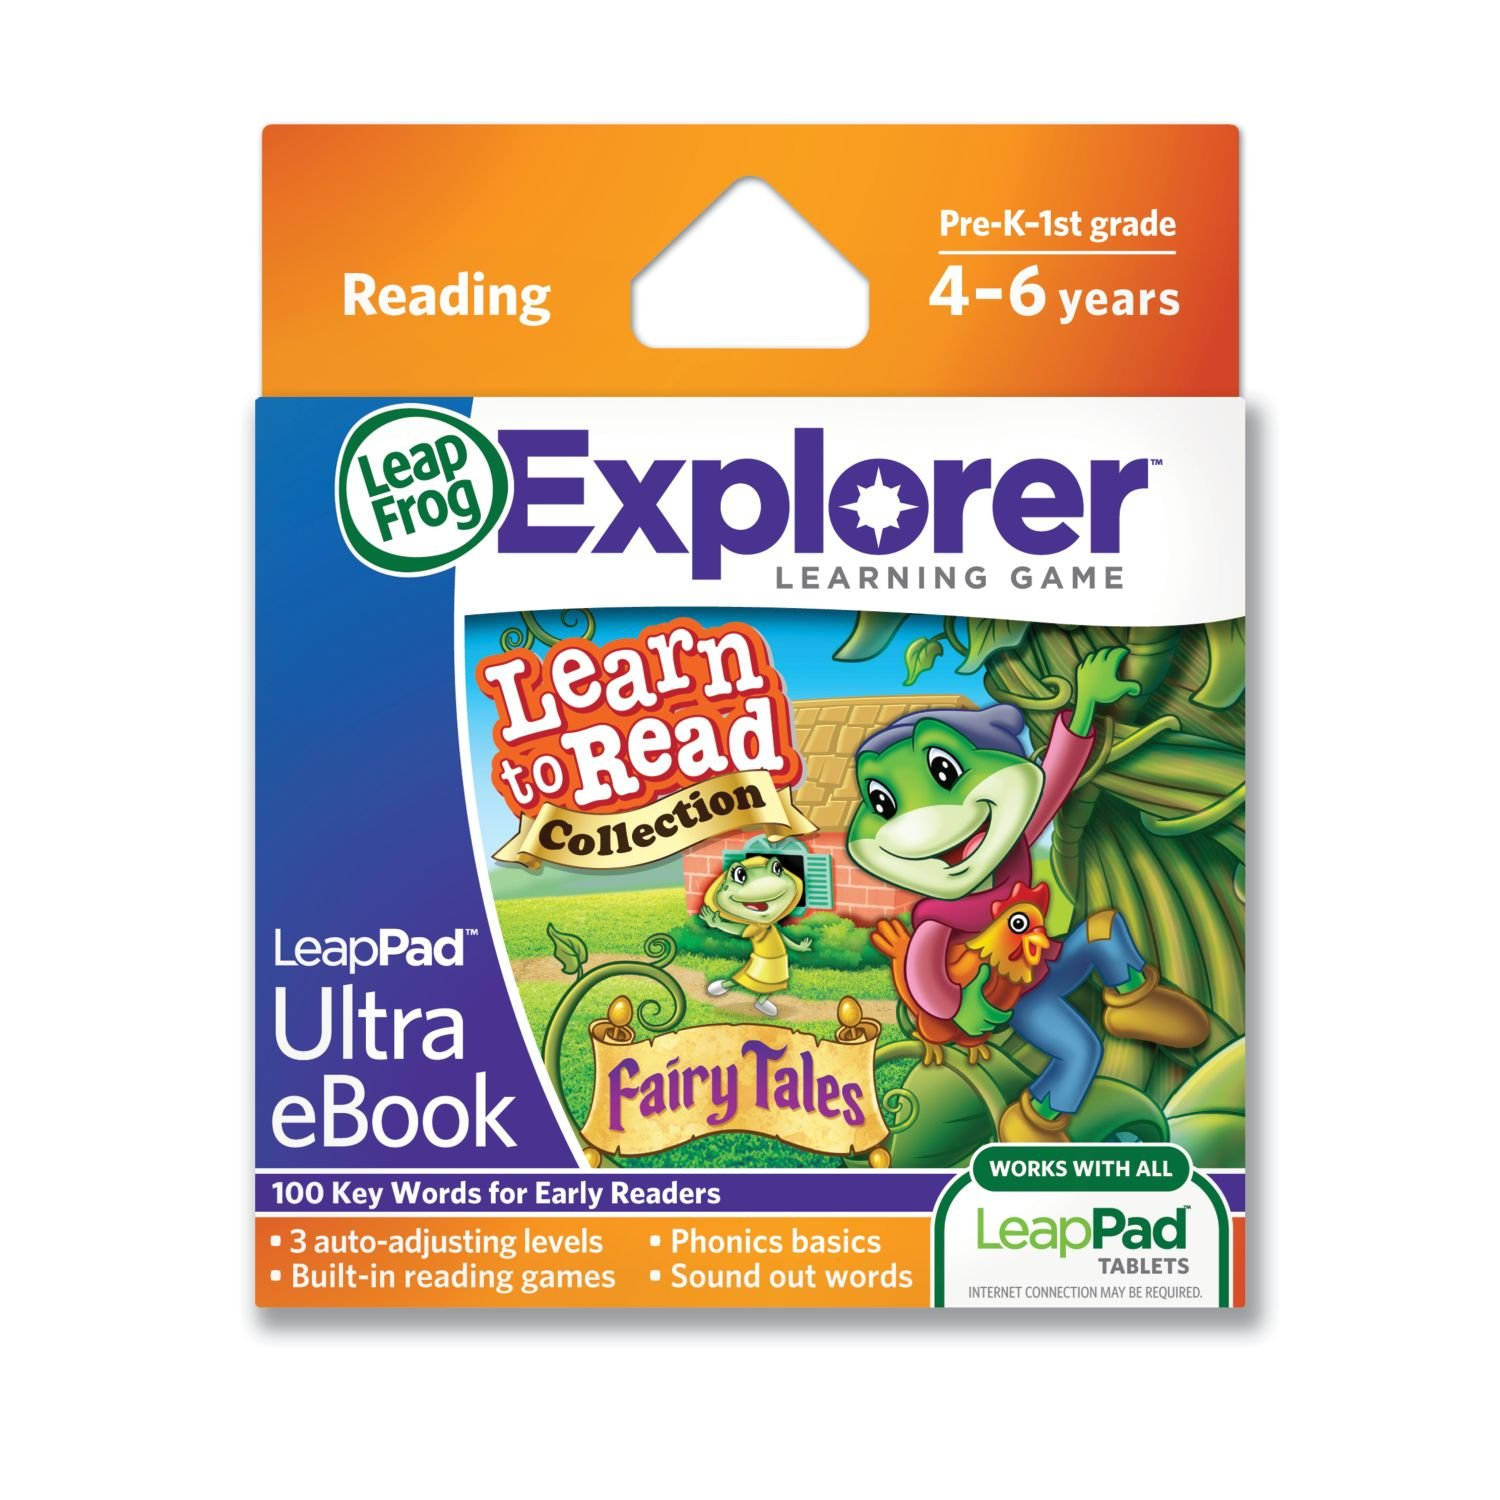 LeapFrog LeapPad Ultra eBook Learn to Read Collection: Fairy Tales (works with all LeapPad tablets) by LeapFrog